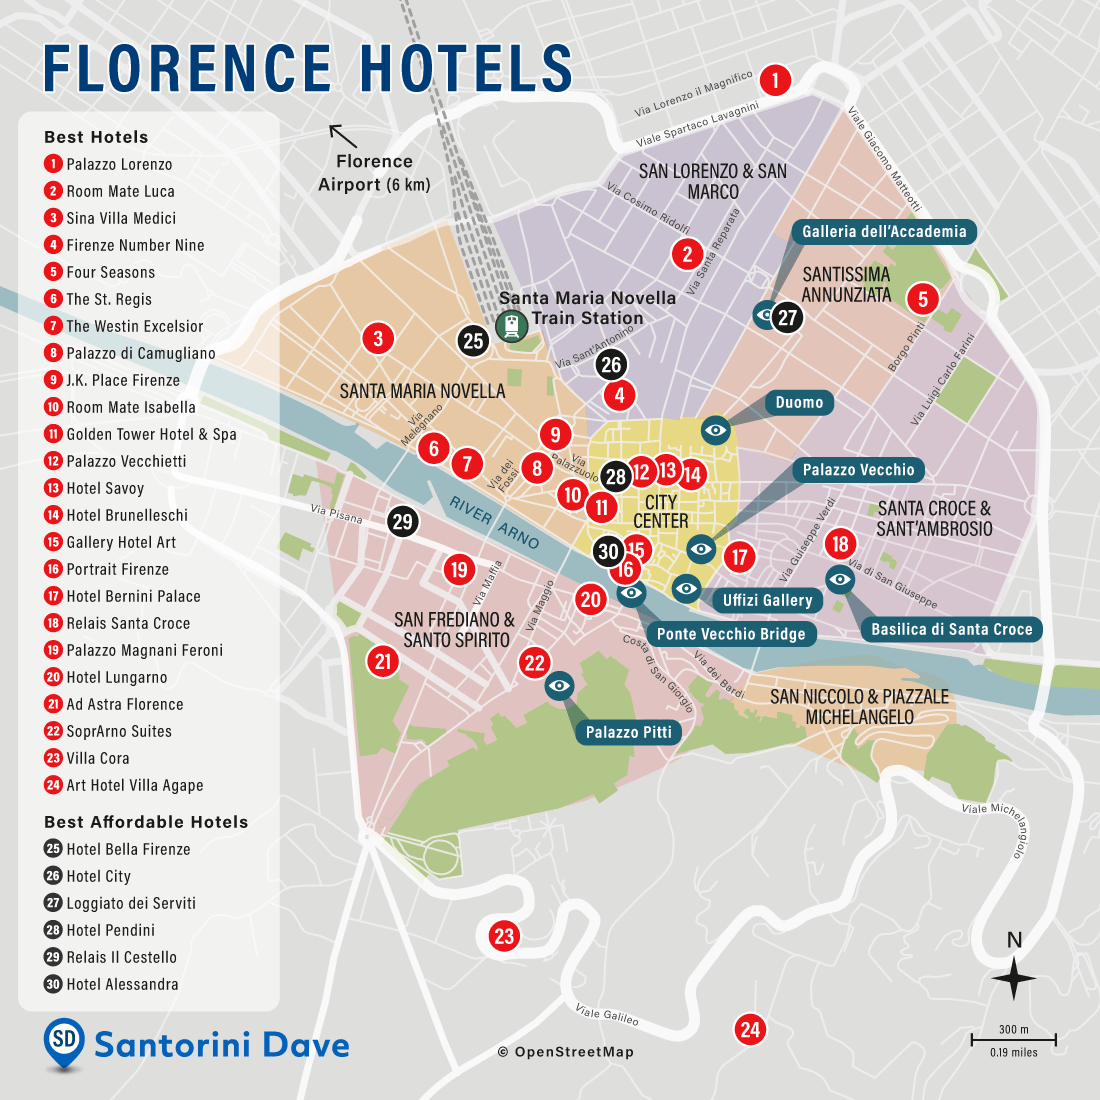 Map of Flrorence best hotels and neighborhoods.